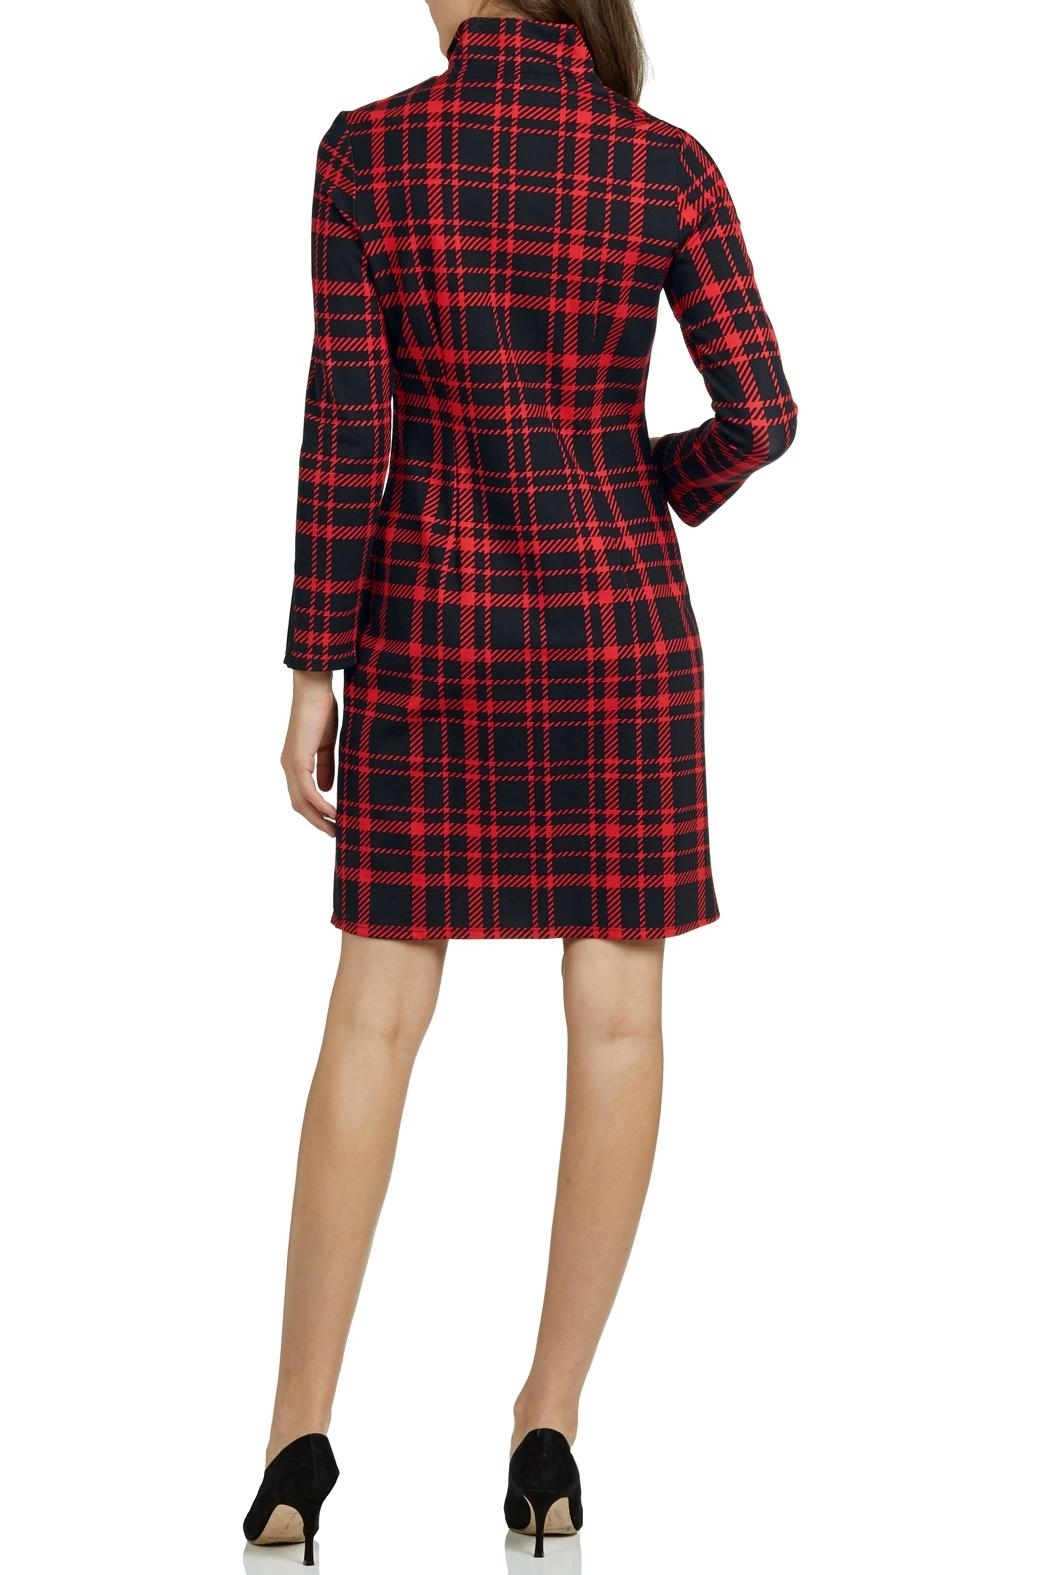 Jude Connally Anna Ponte Knit Dress - Front Full Image